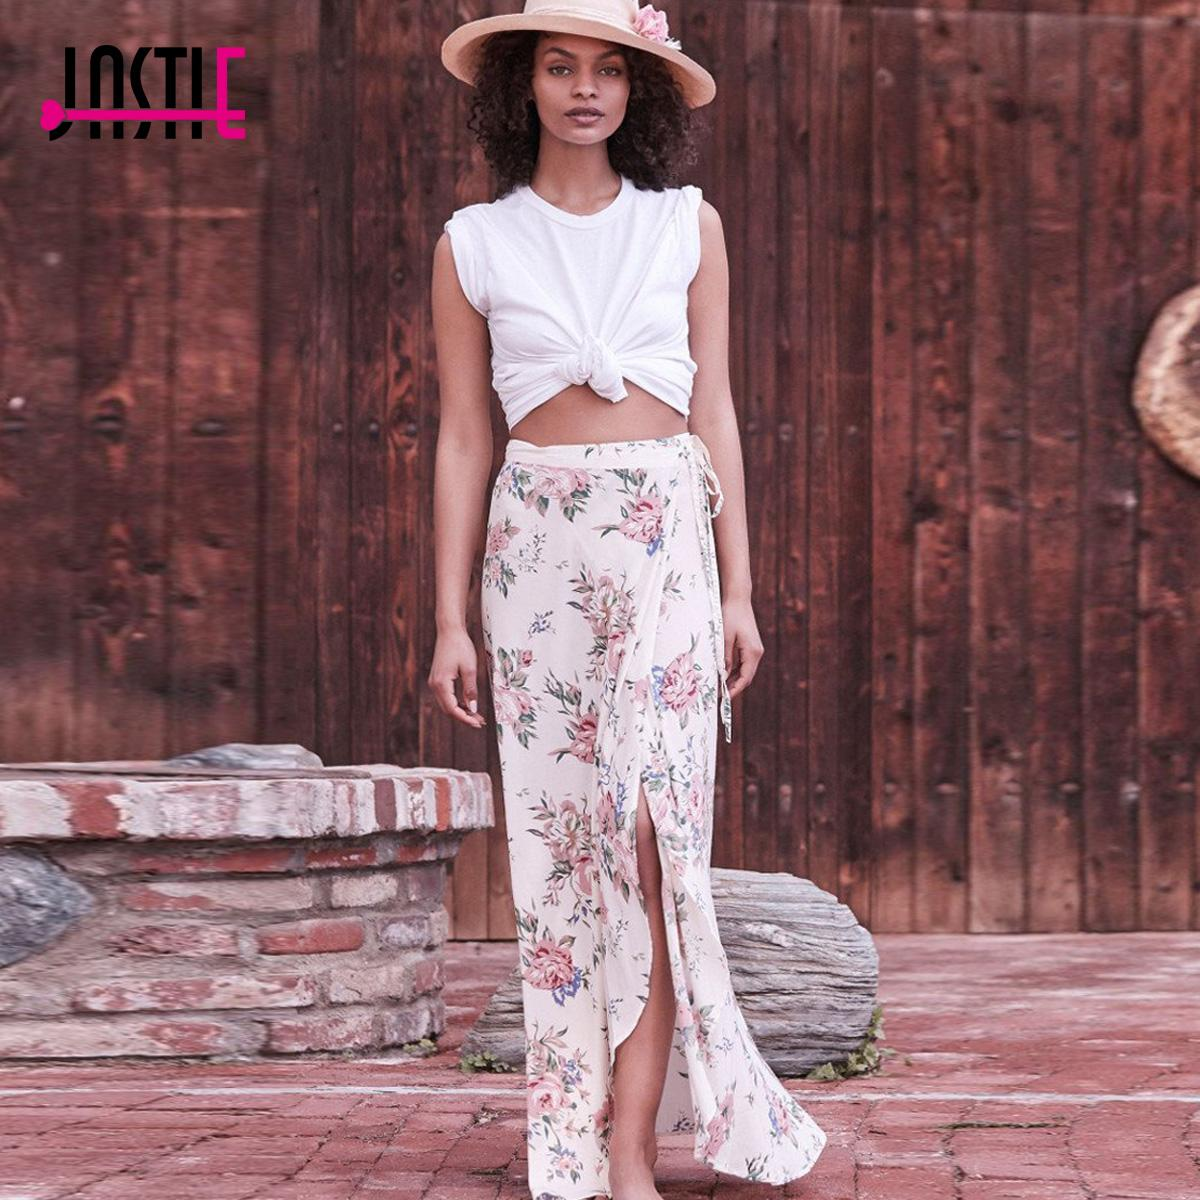 d1de1852a0 2019 Jastie Wild Rose Maxi Wrap Skirt Vintage Bloom Print Natural Casual  Beach Skirts Saia High Waist Tie Split Skirt Female Faldas From Movearound,  ...